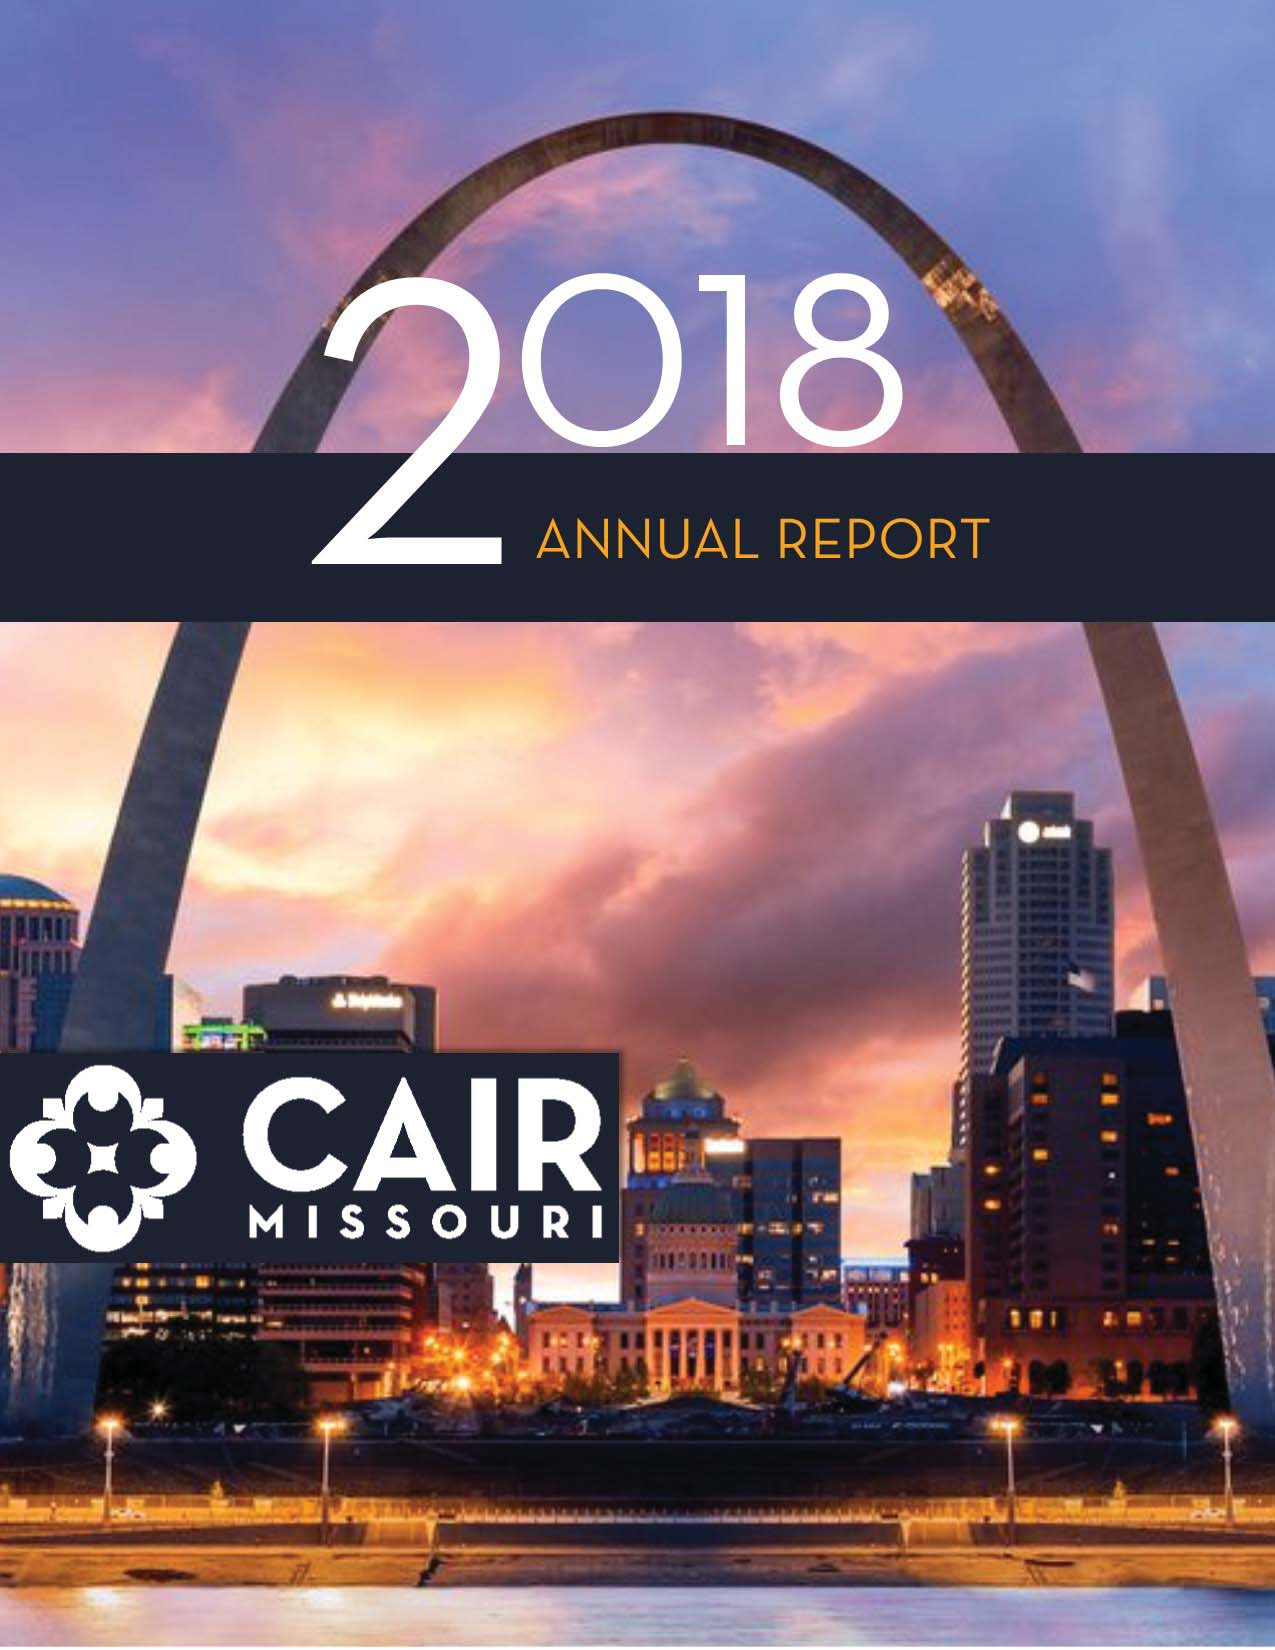 final CAIR MISSOURI 2018 ANNUAL REPORT DRAFT Page 01